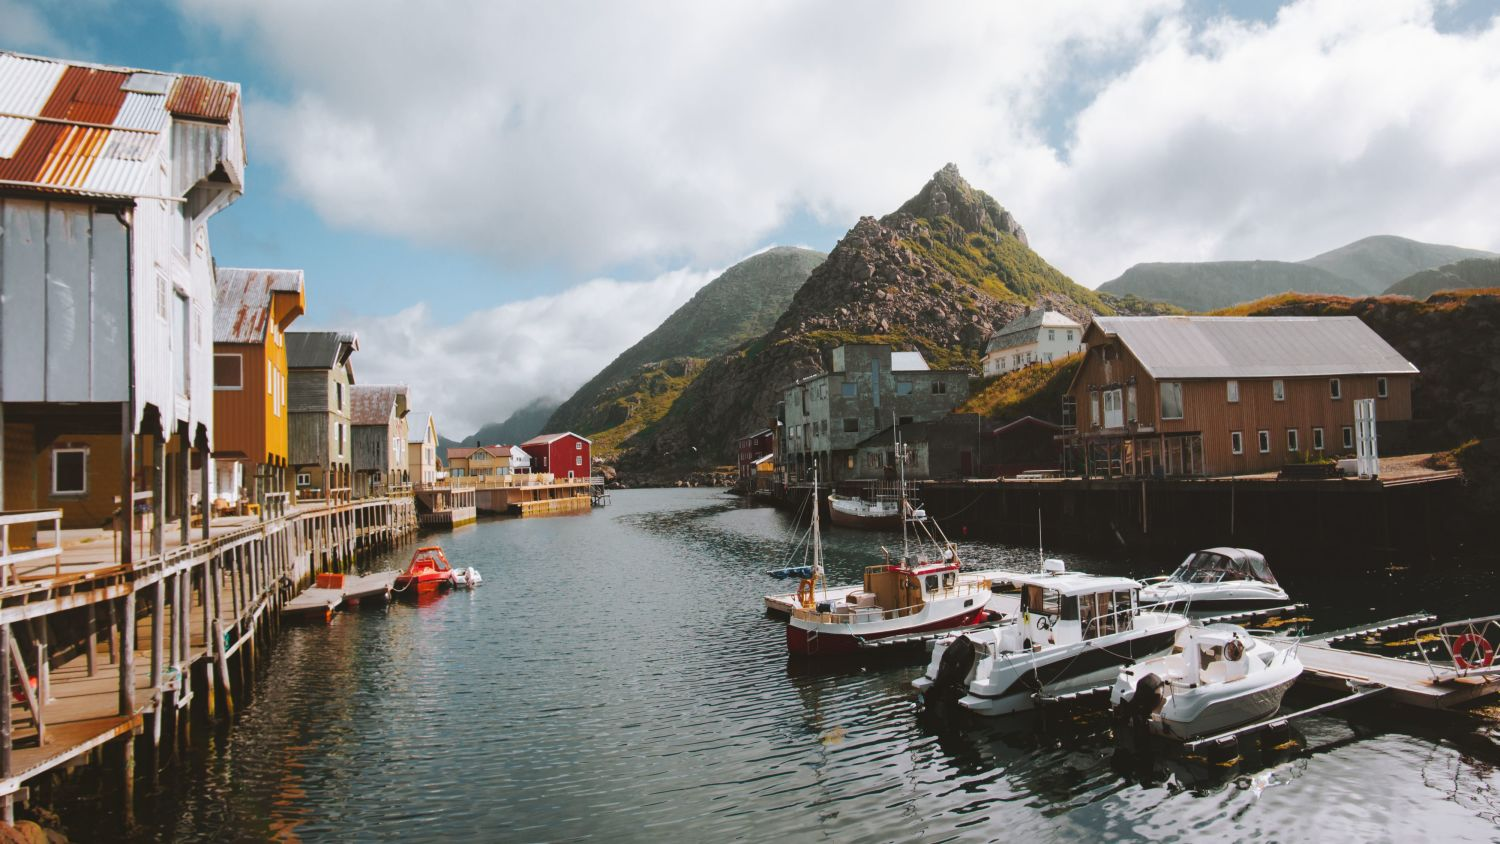 Nyksund fishing village in Vesterålen with boathouses, and boats in front of green mountain.